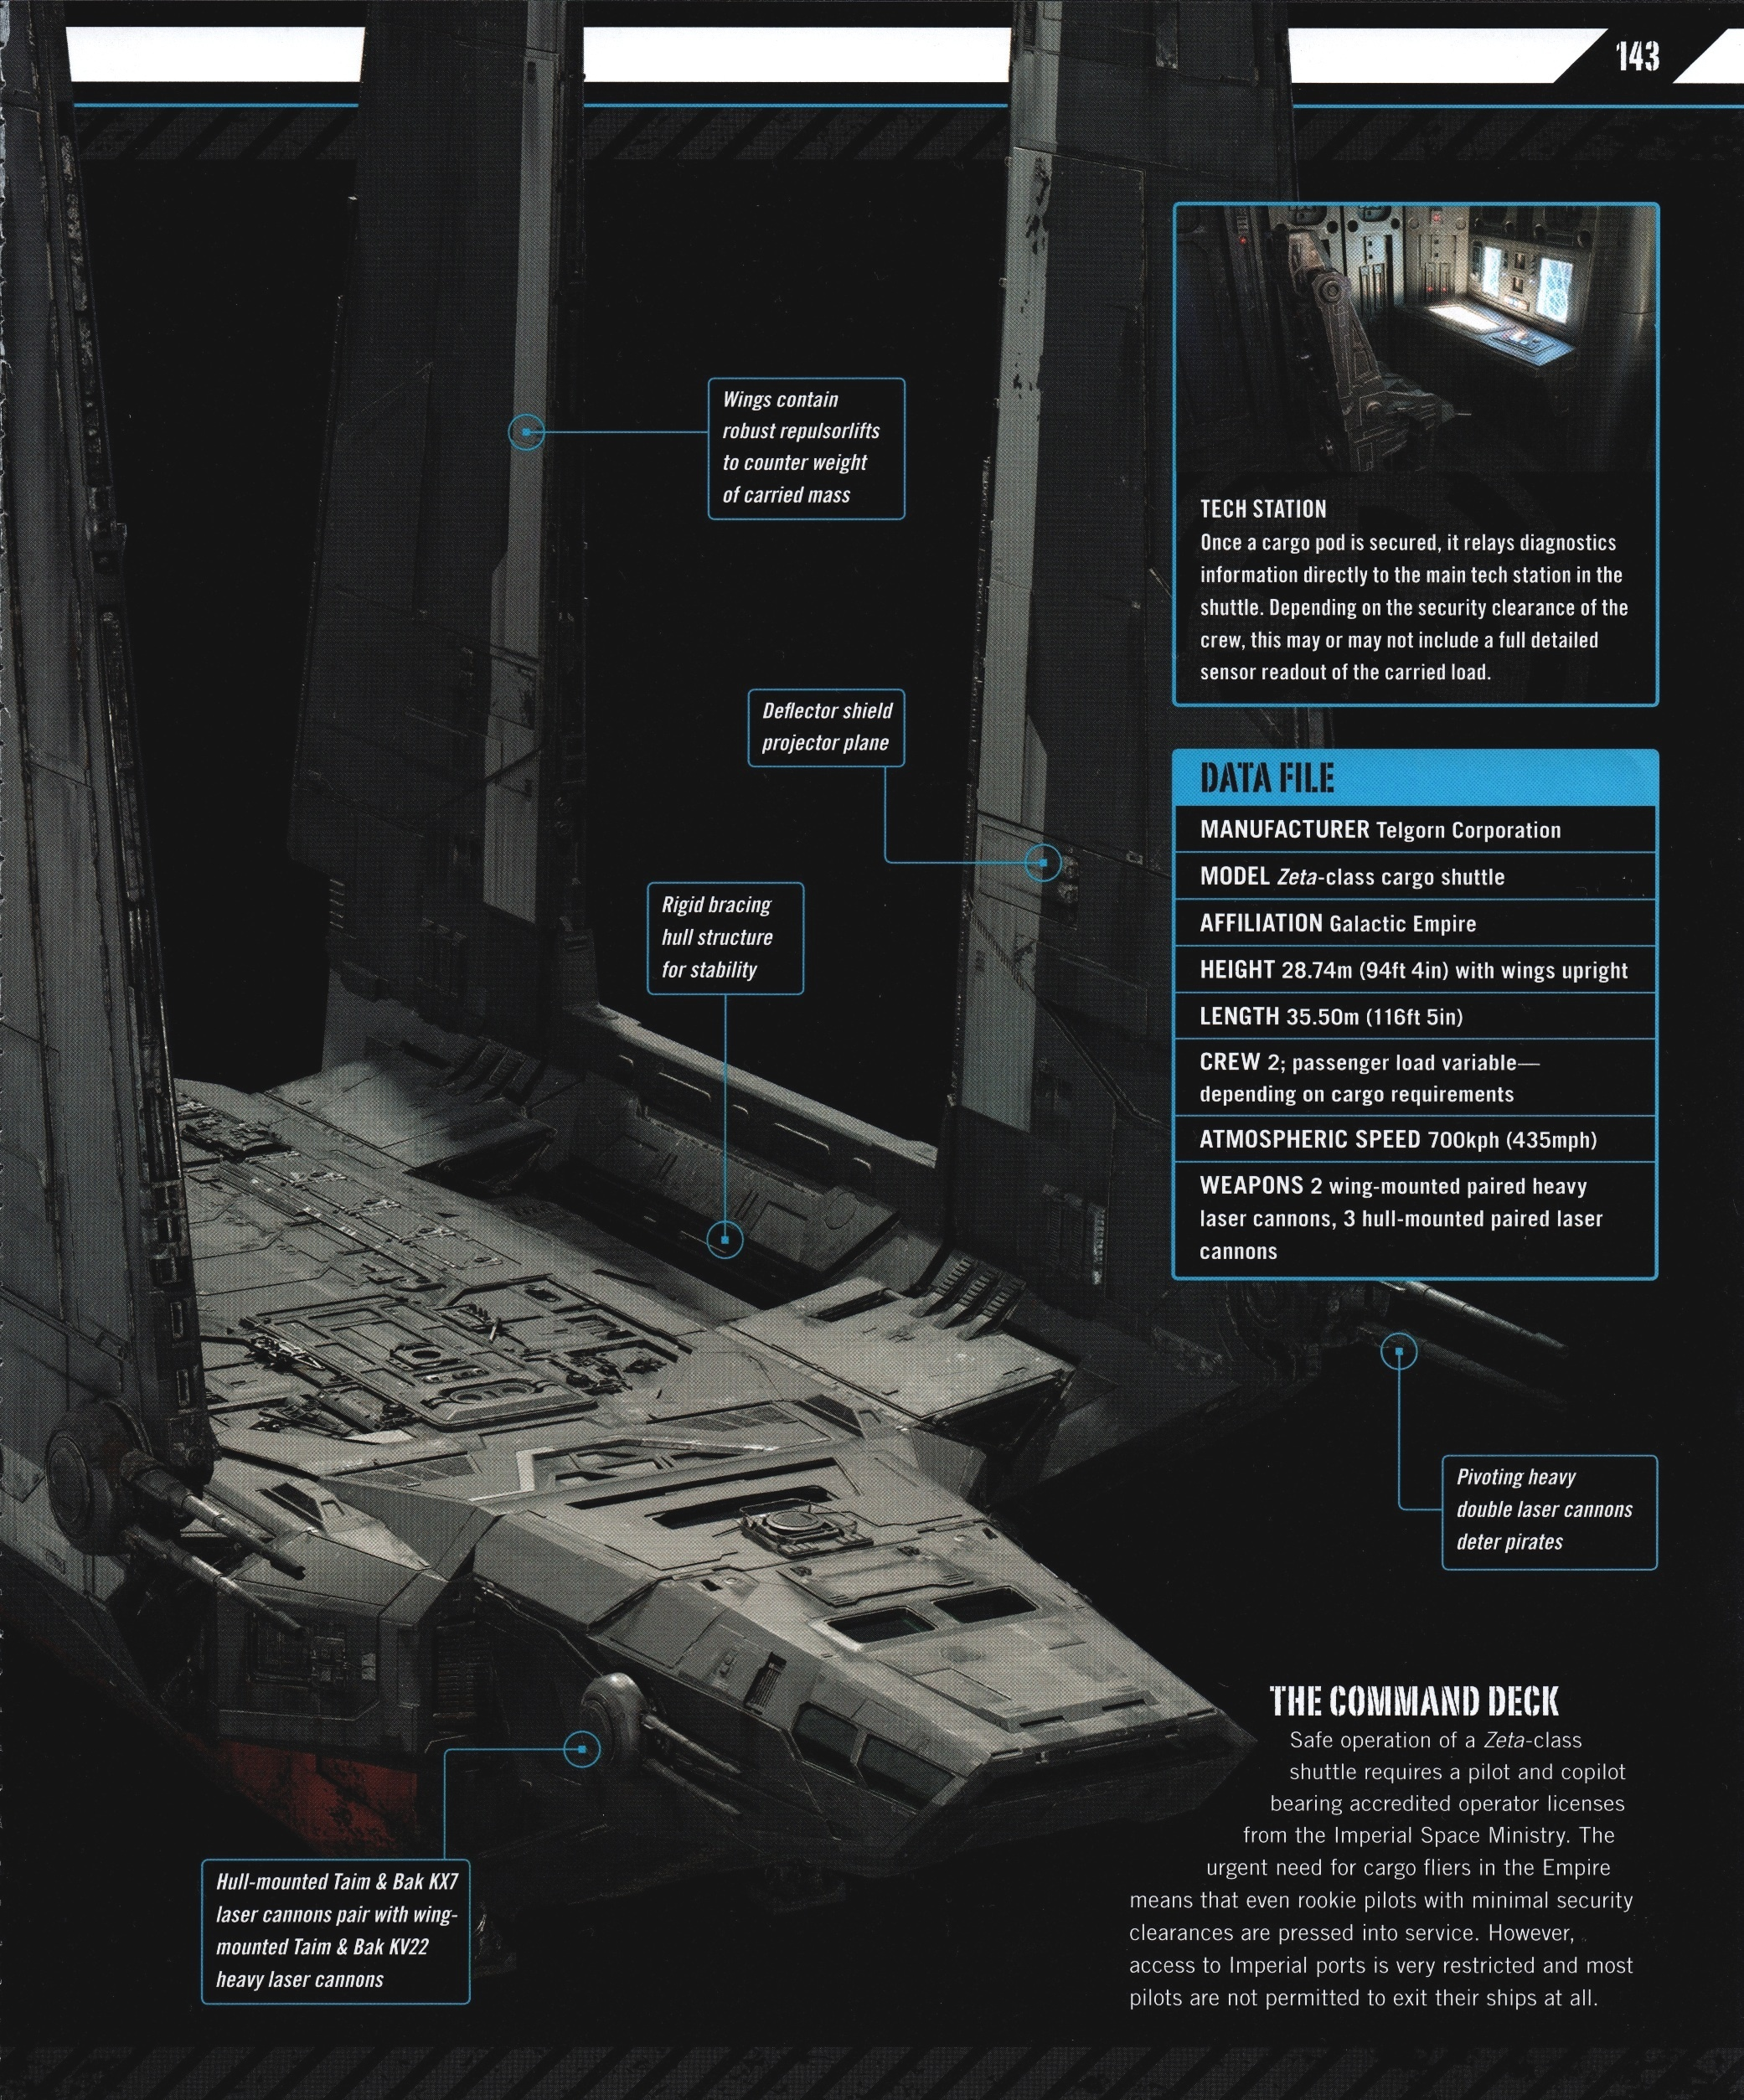 Rogue One Ultimate Visual Guide (b0bafett_Empire) p143